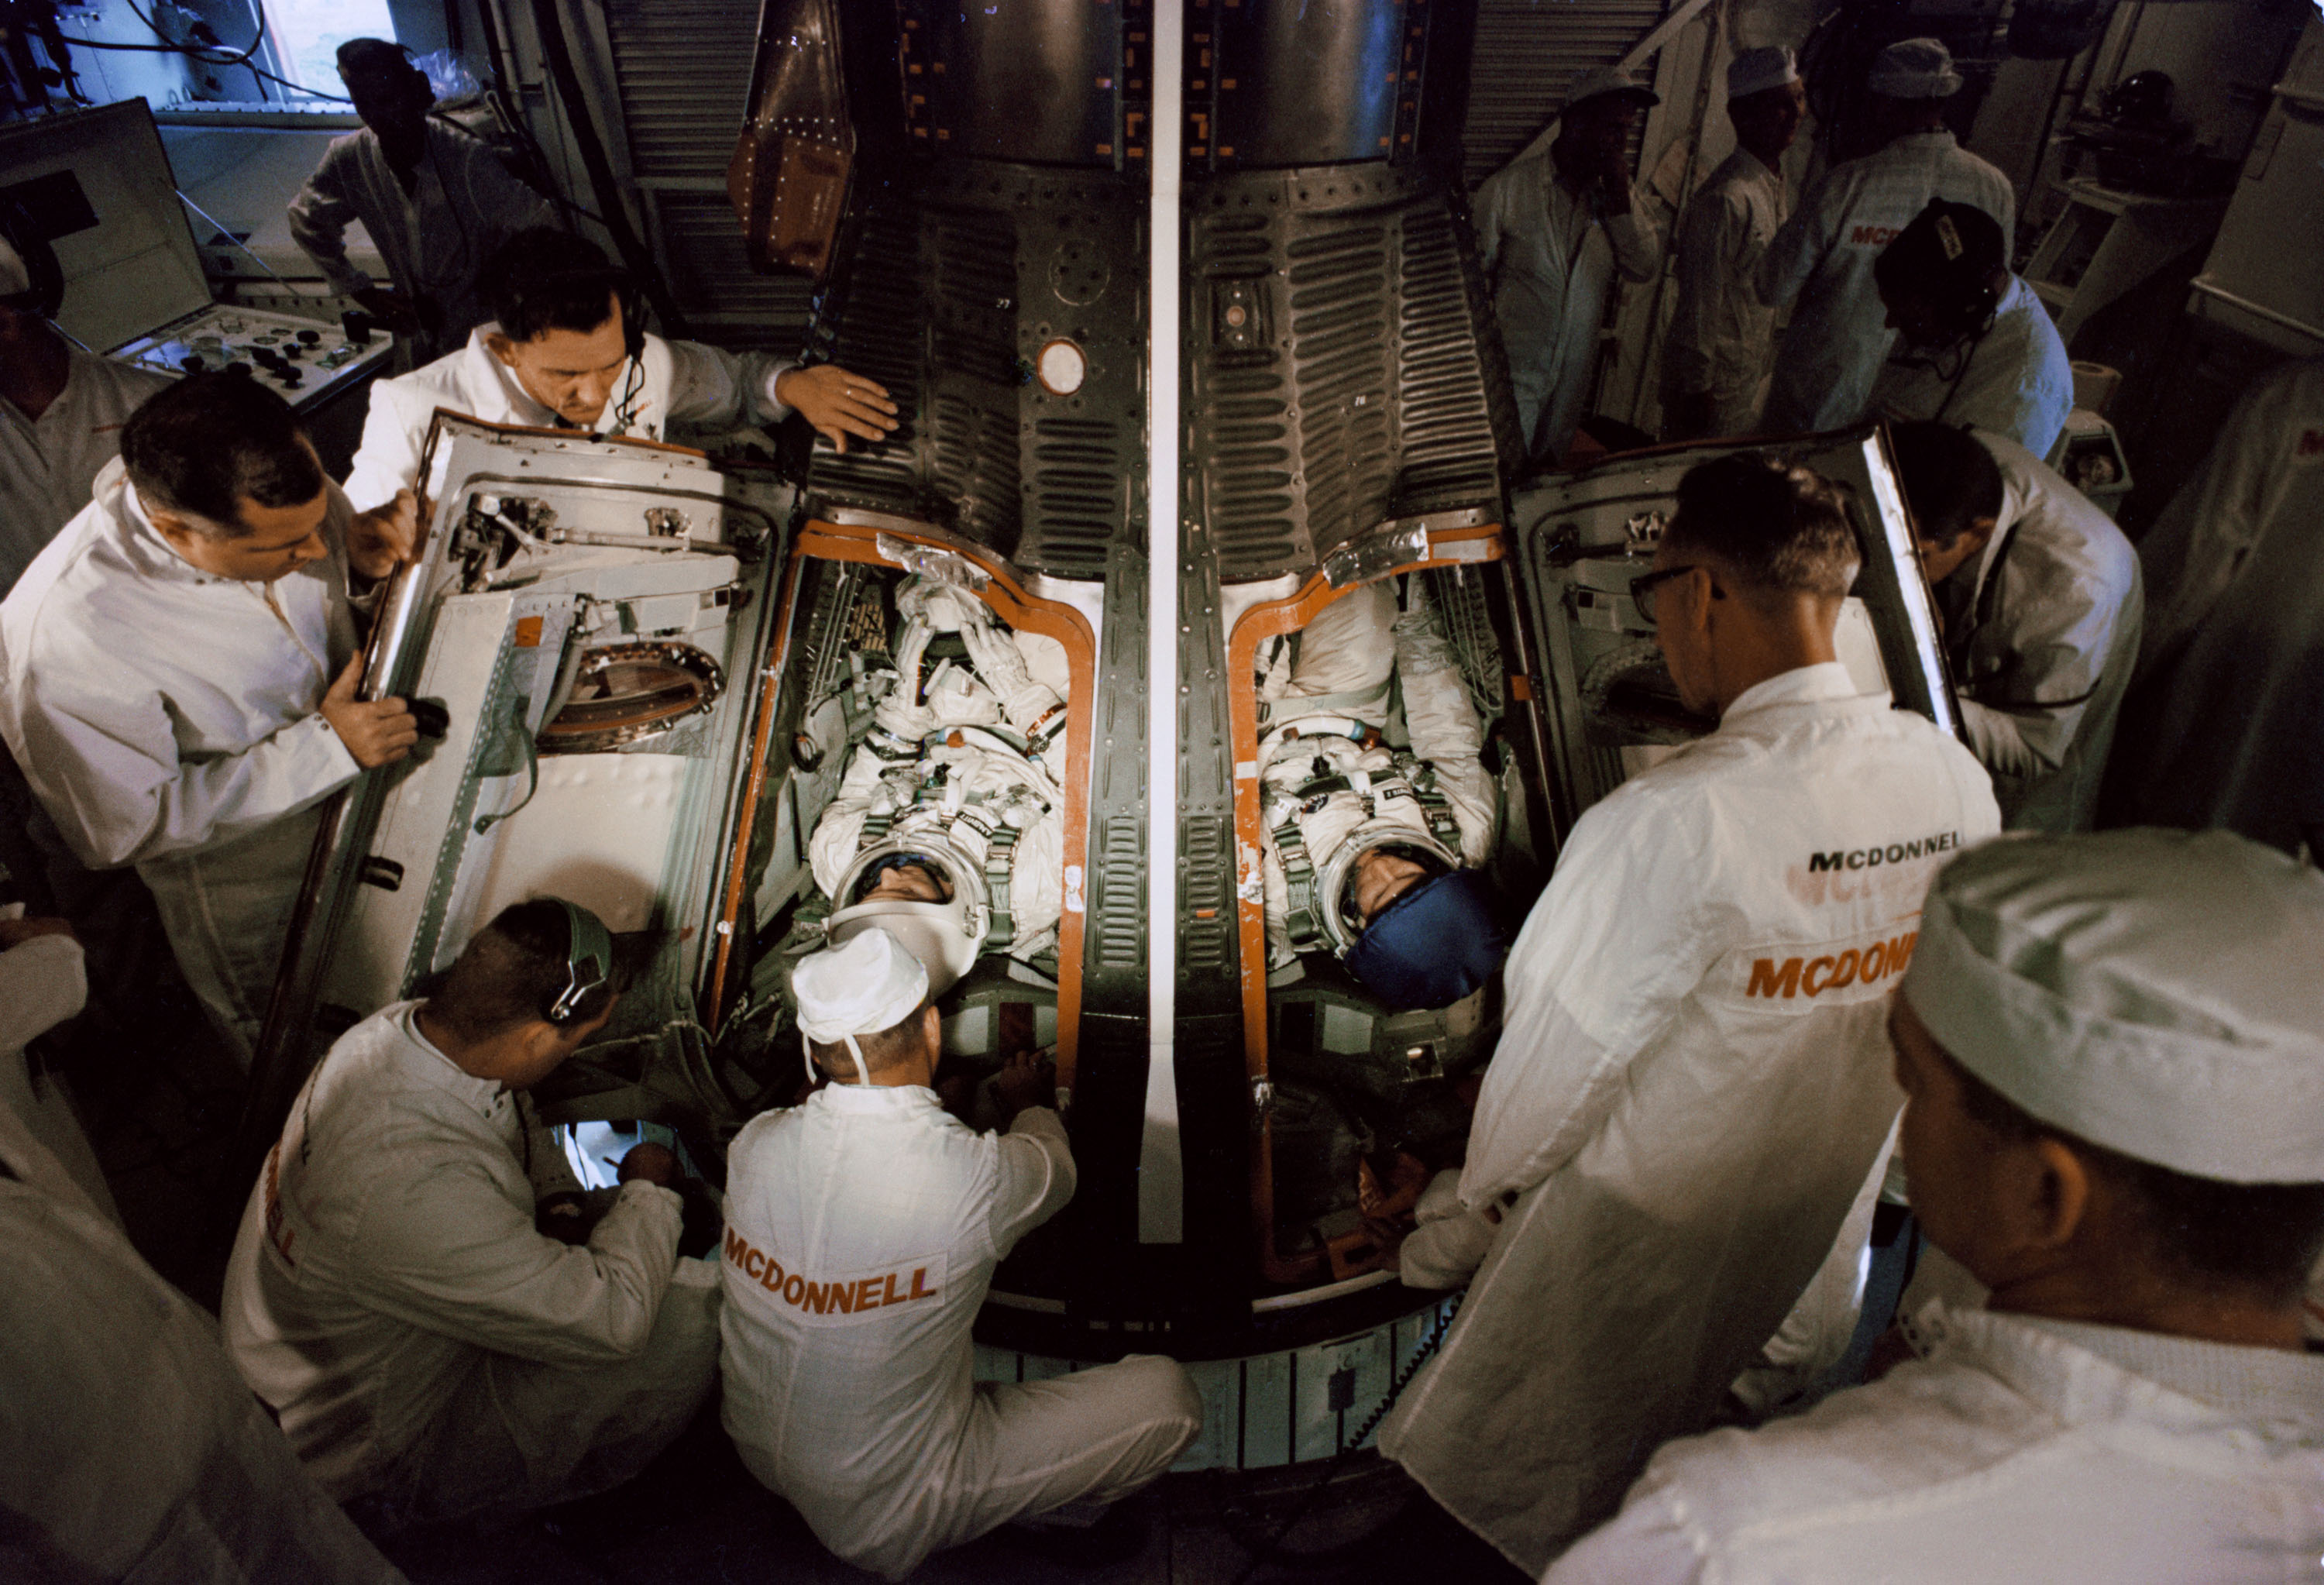 jim and kims mission to space Jim lovell first went into space aboard gemini 7 in 1965 he was also the gemini 12 mission commander before serving as the command module pilot on apollo 8, the first time humans orbited the moon.